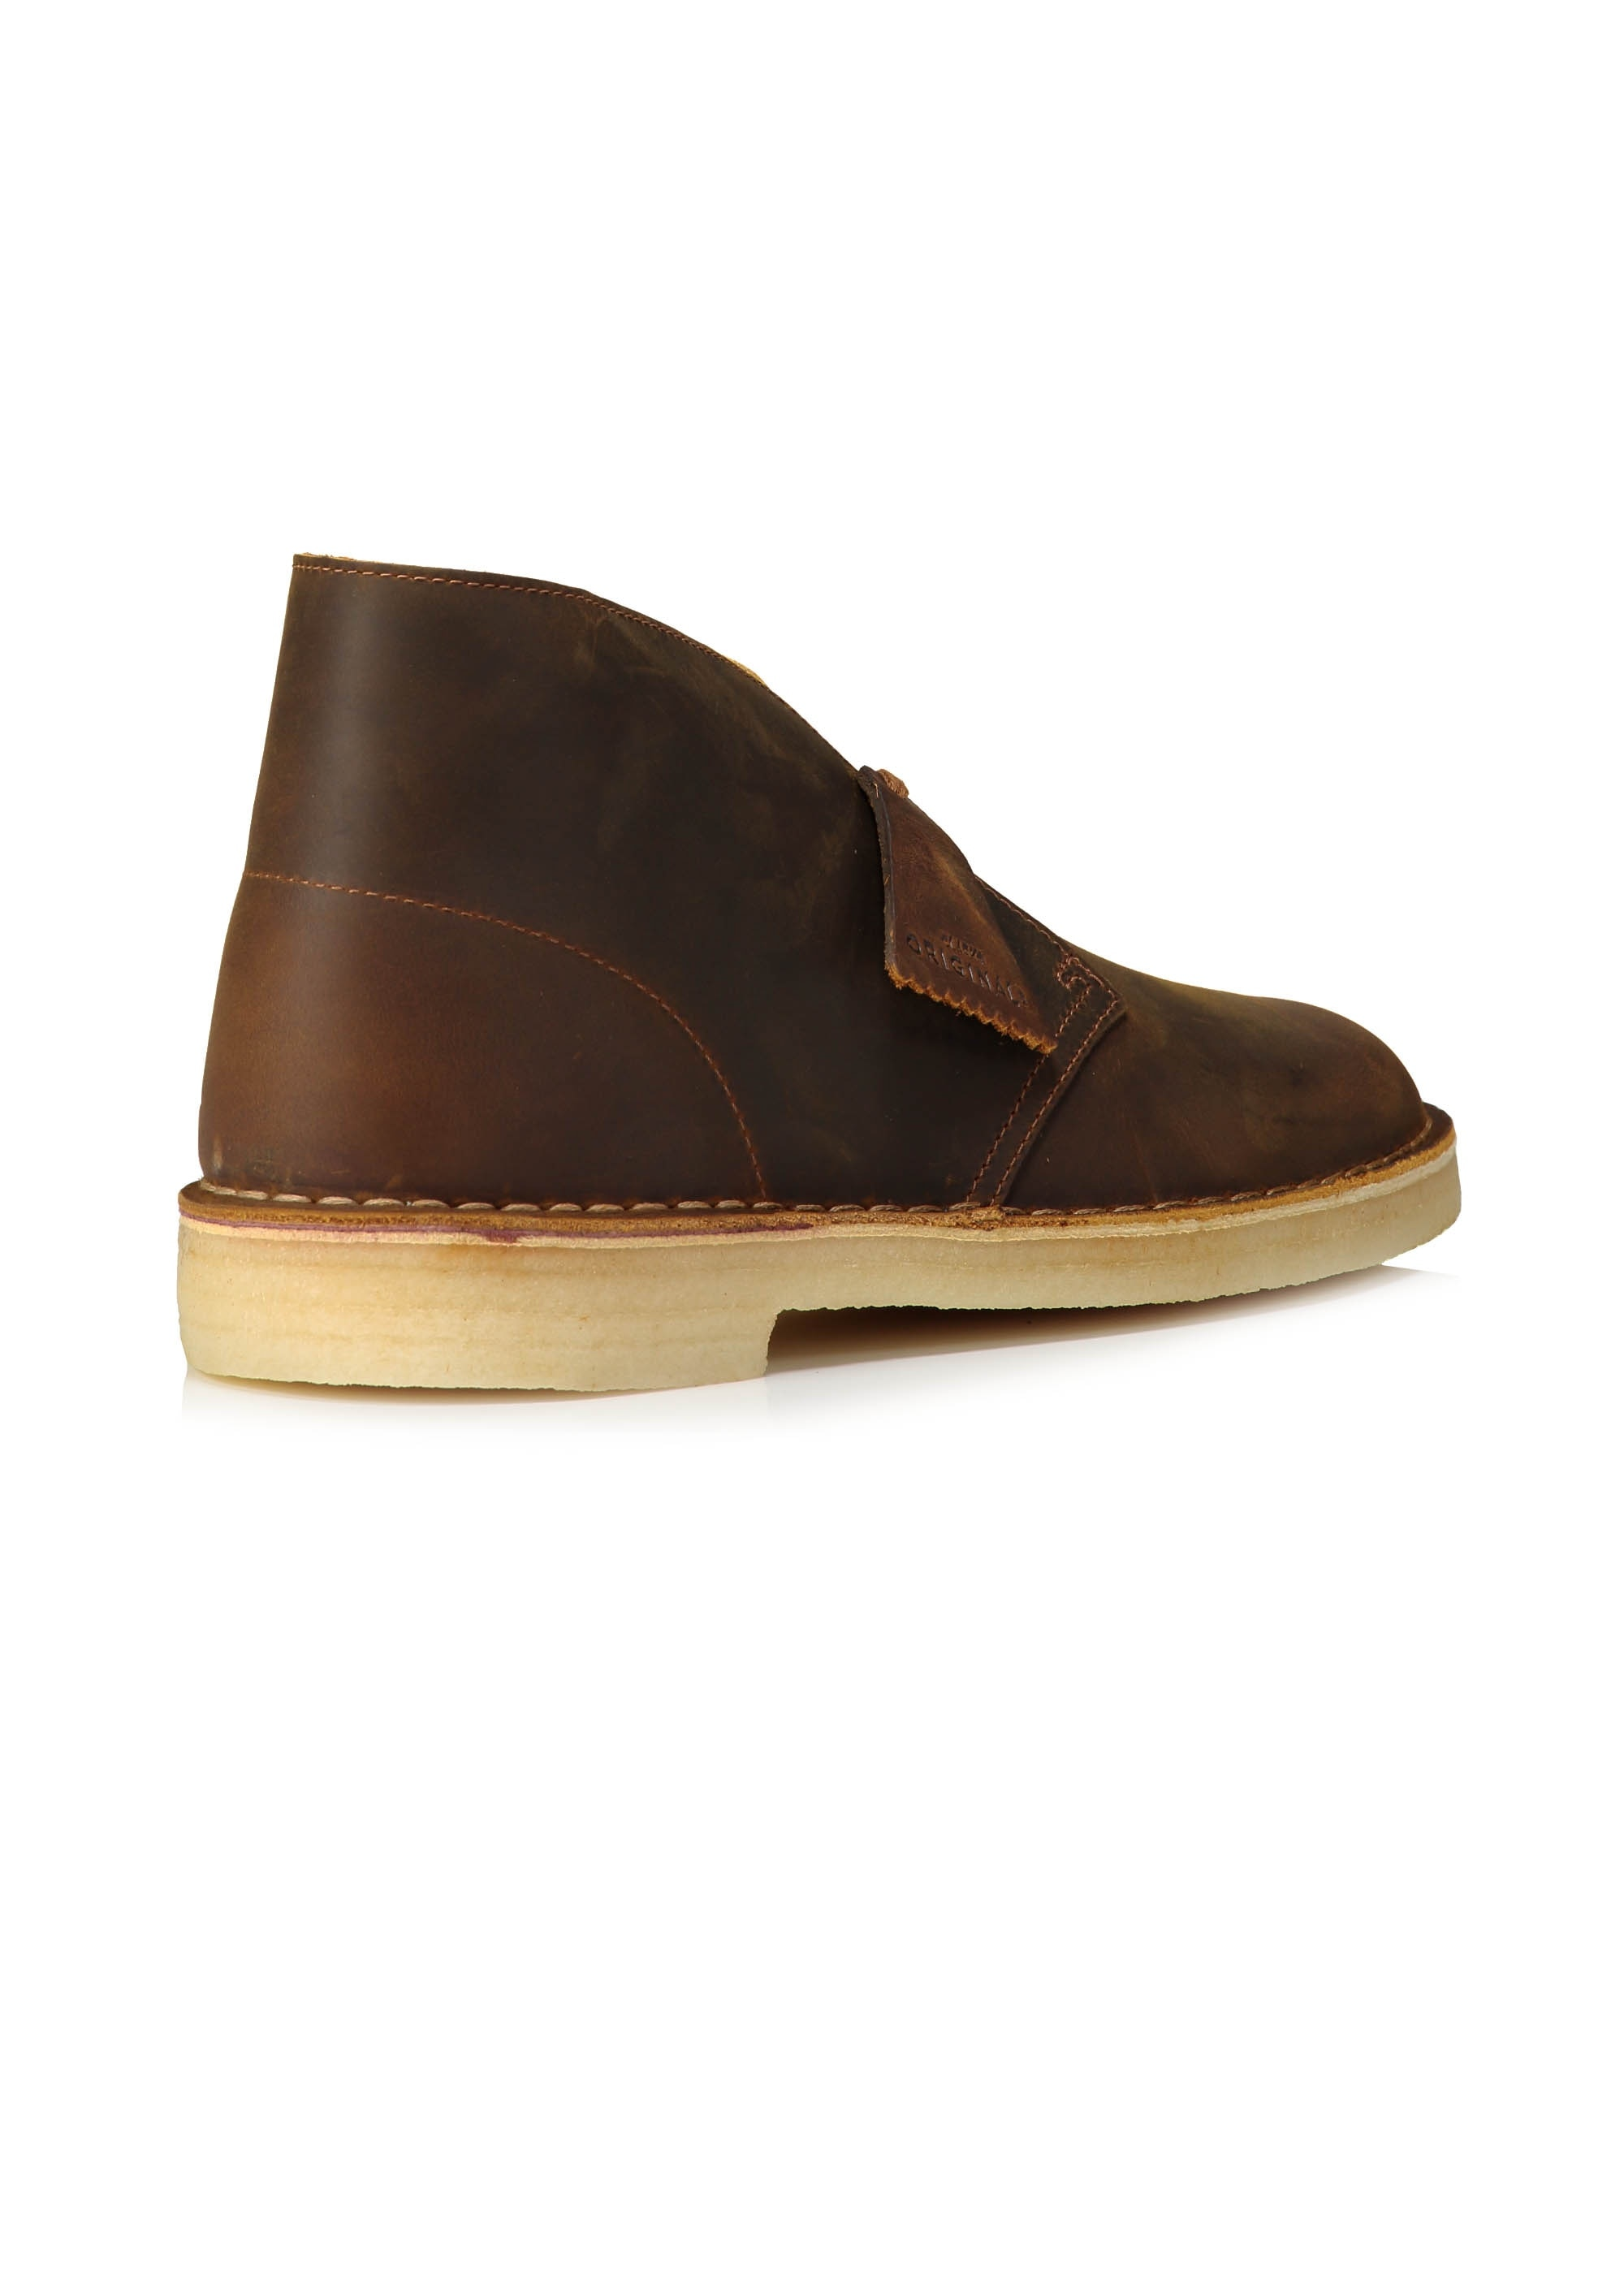 662907044 Clarks originals desert boot beeswax jpg 2000x2798 Beeswax desert boots  with flannel